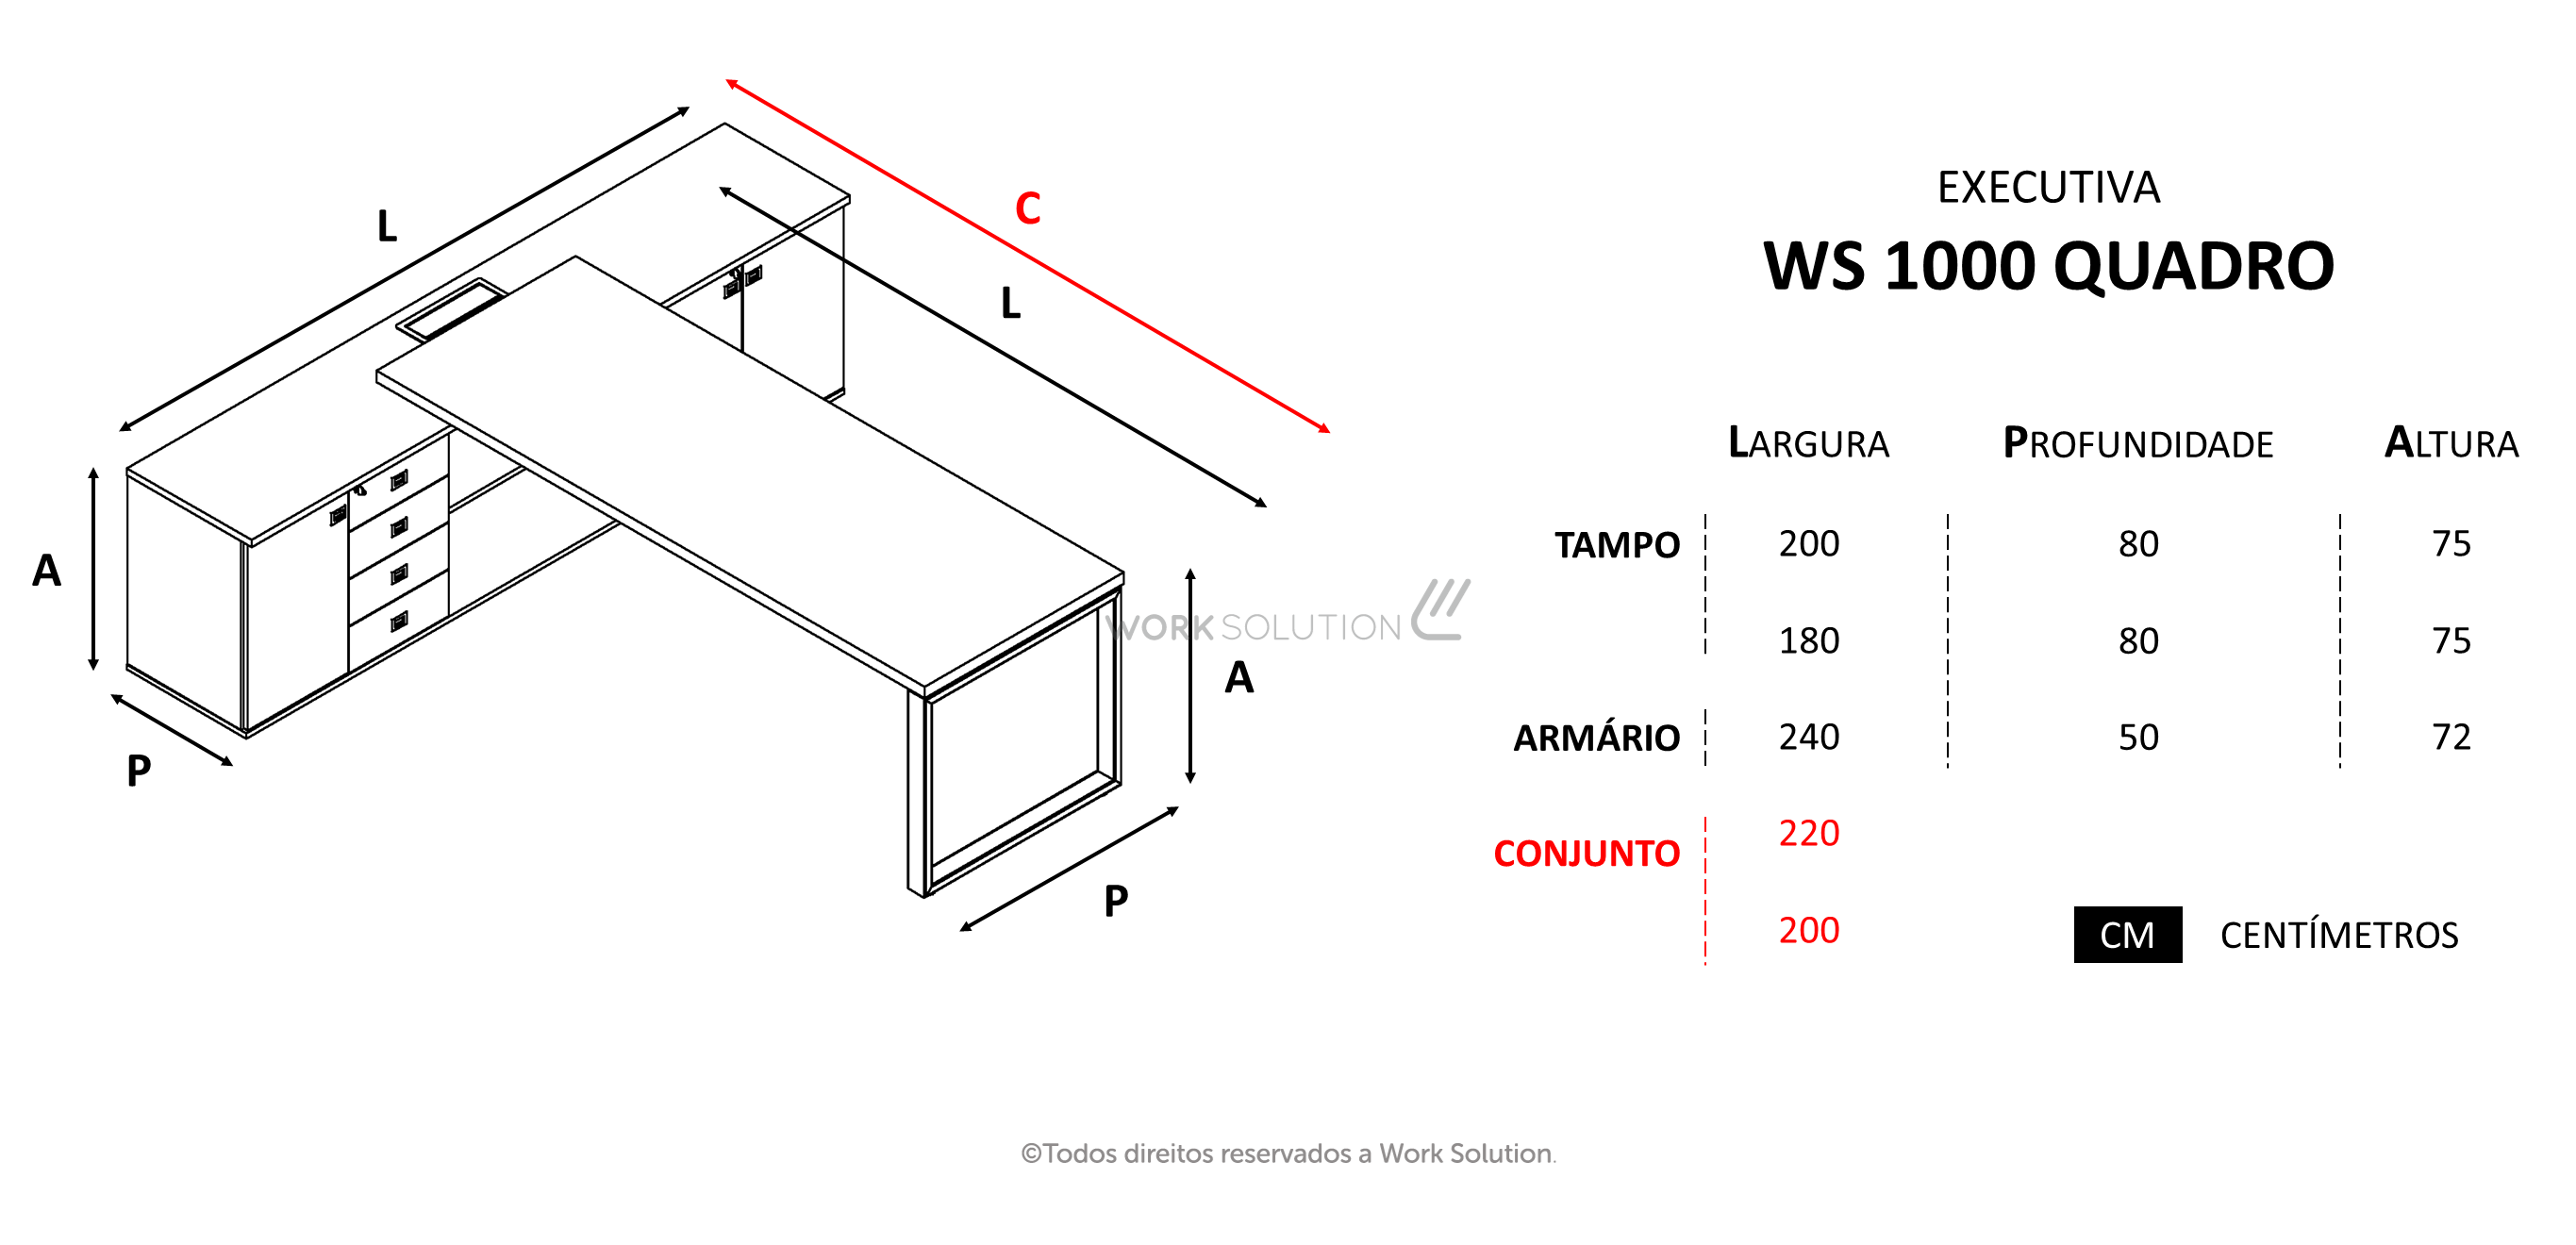 dimensoes-executiva-ws1000-4